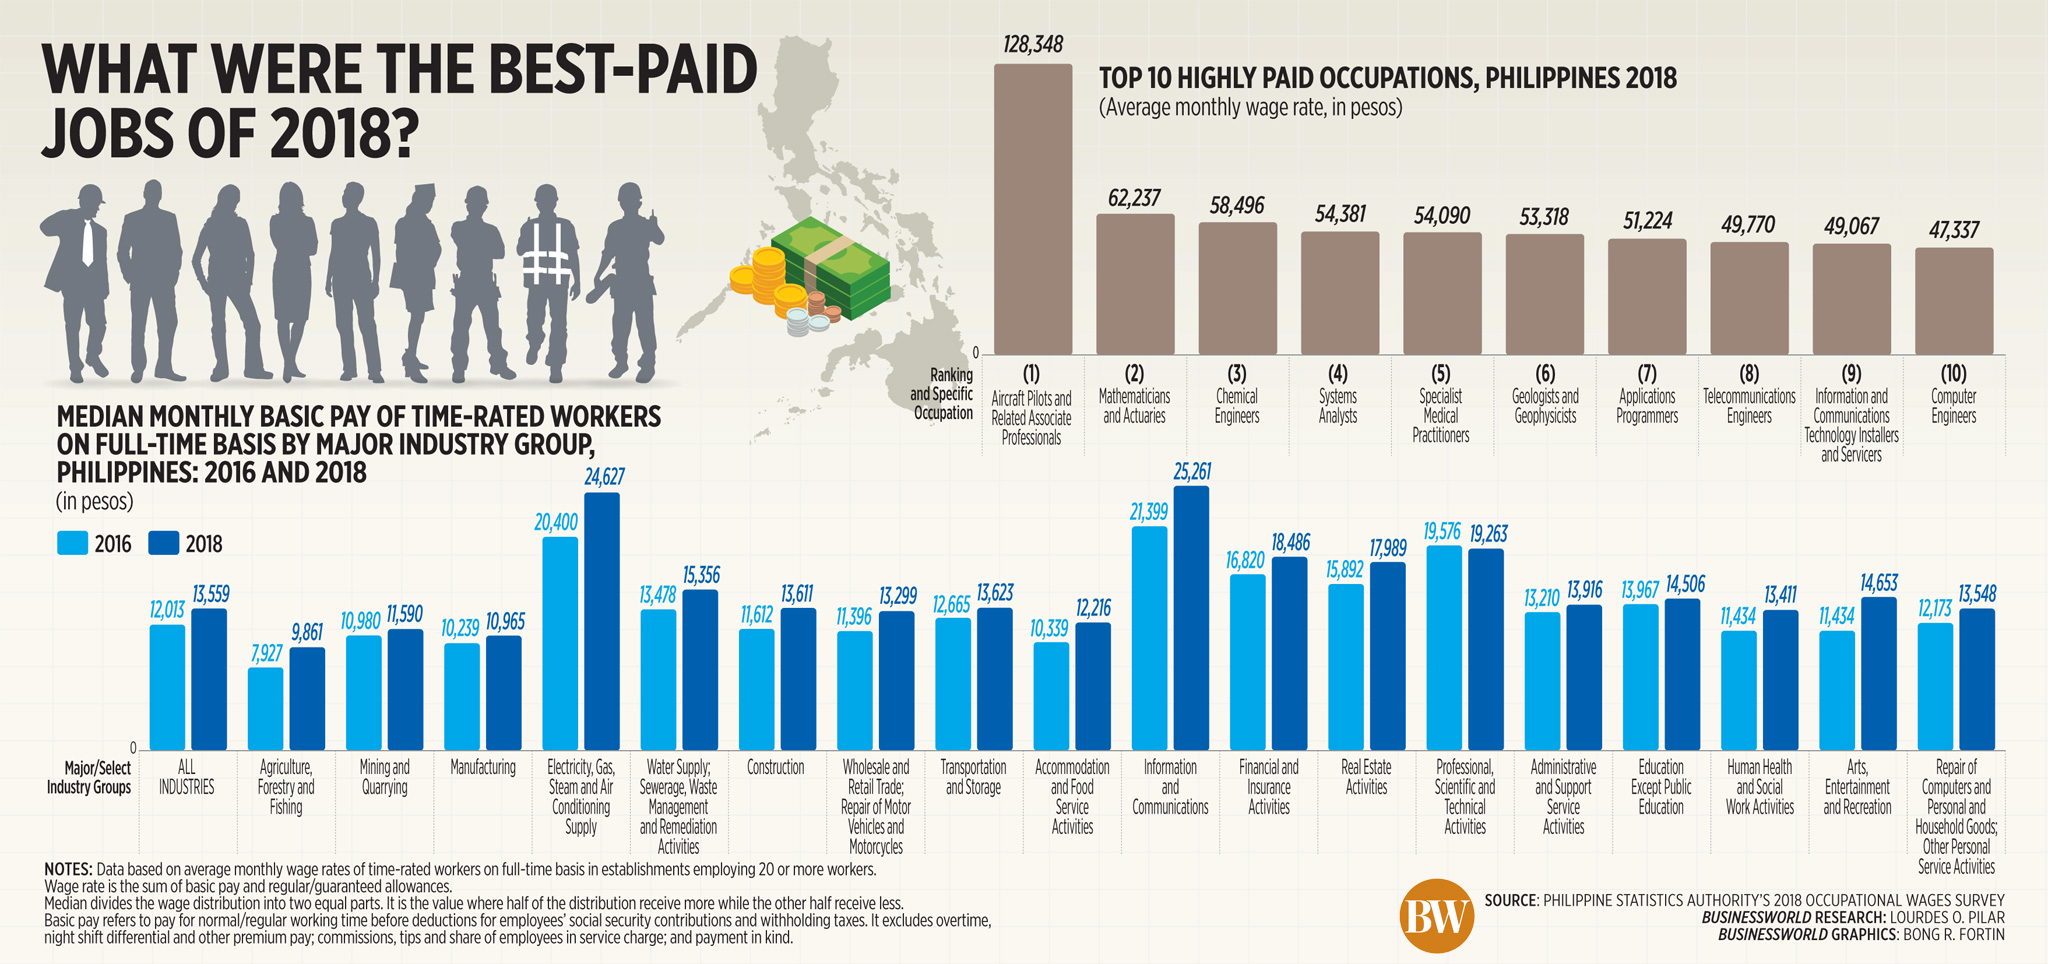 What were the best-paid jobs of 2018?